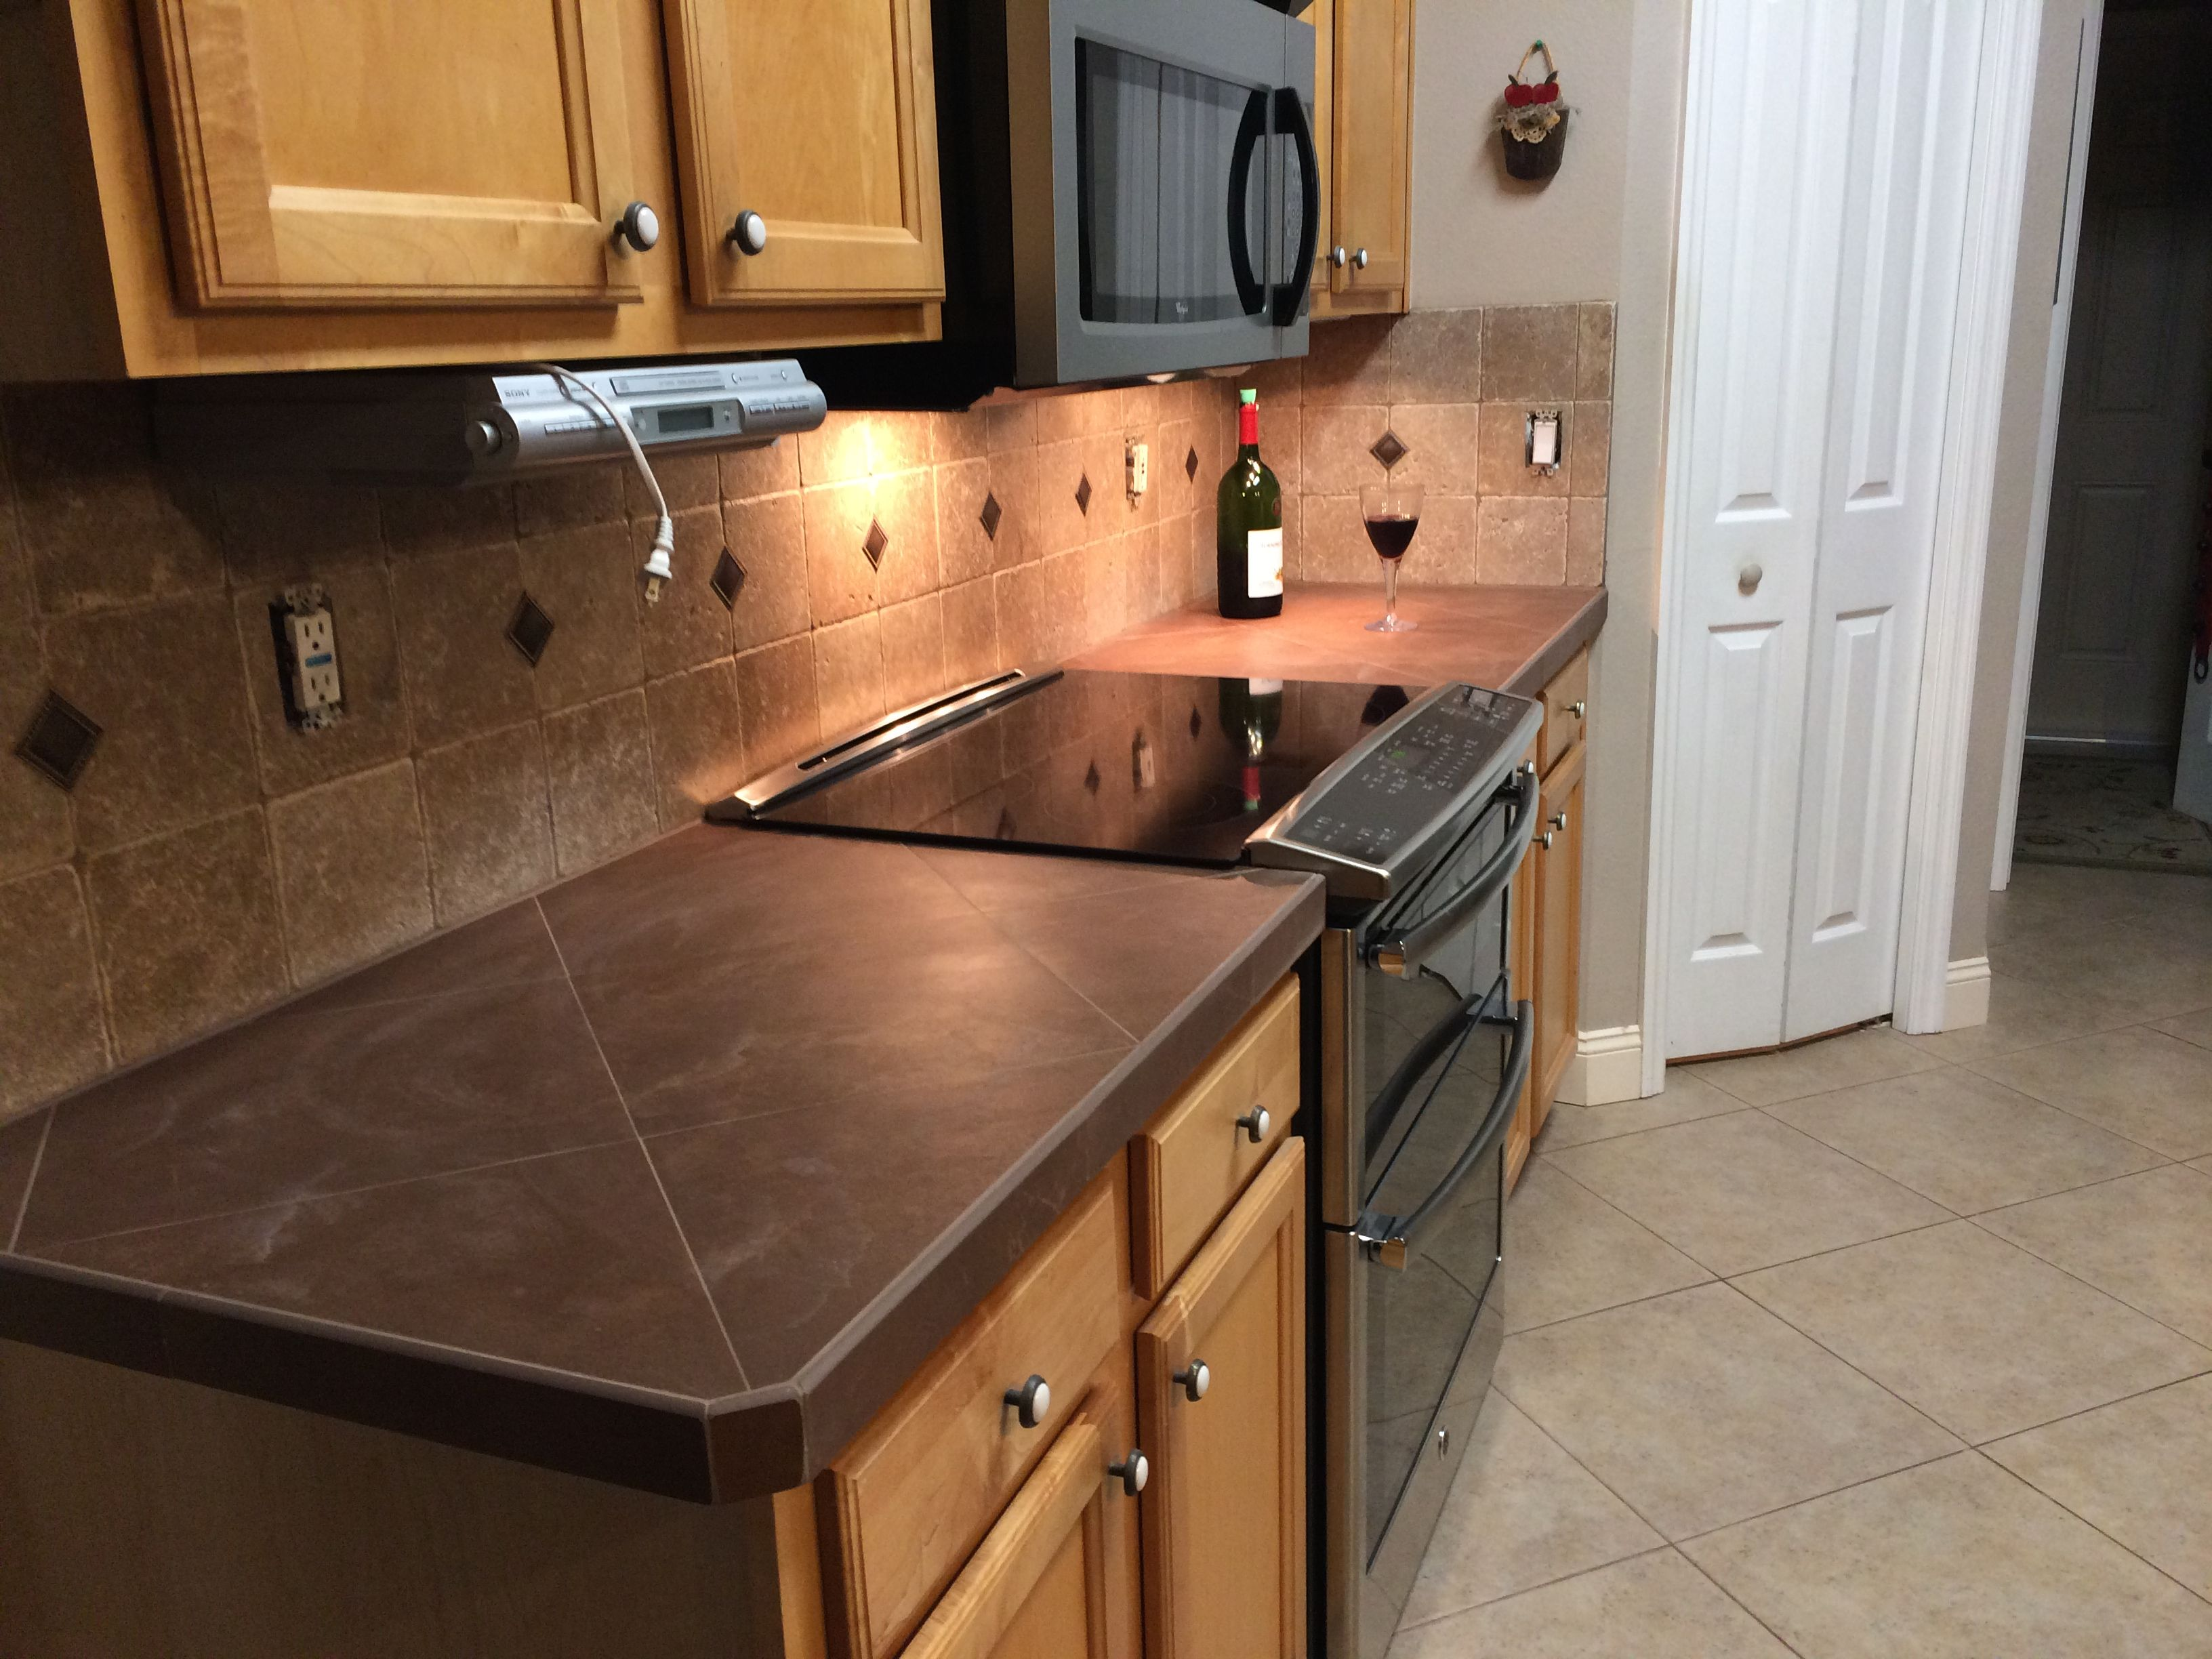 Tiled Kitchen Countertop Right Over Old Almond Color Formica. Added New  Tumbled Stone Backsplash